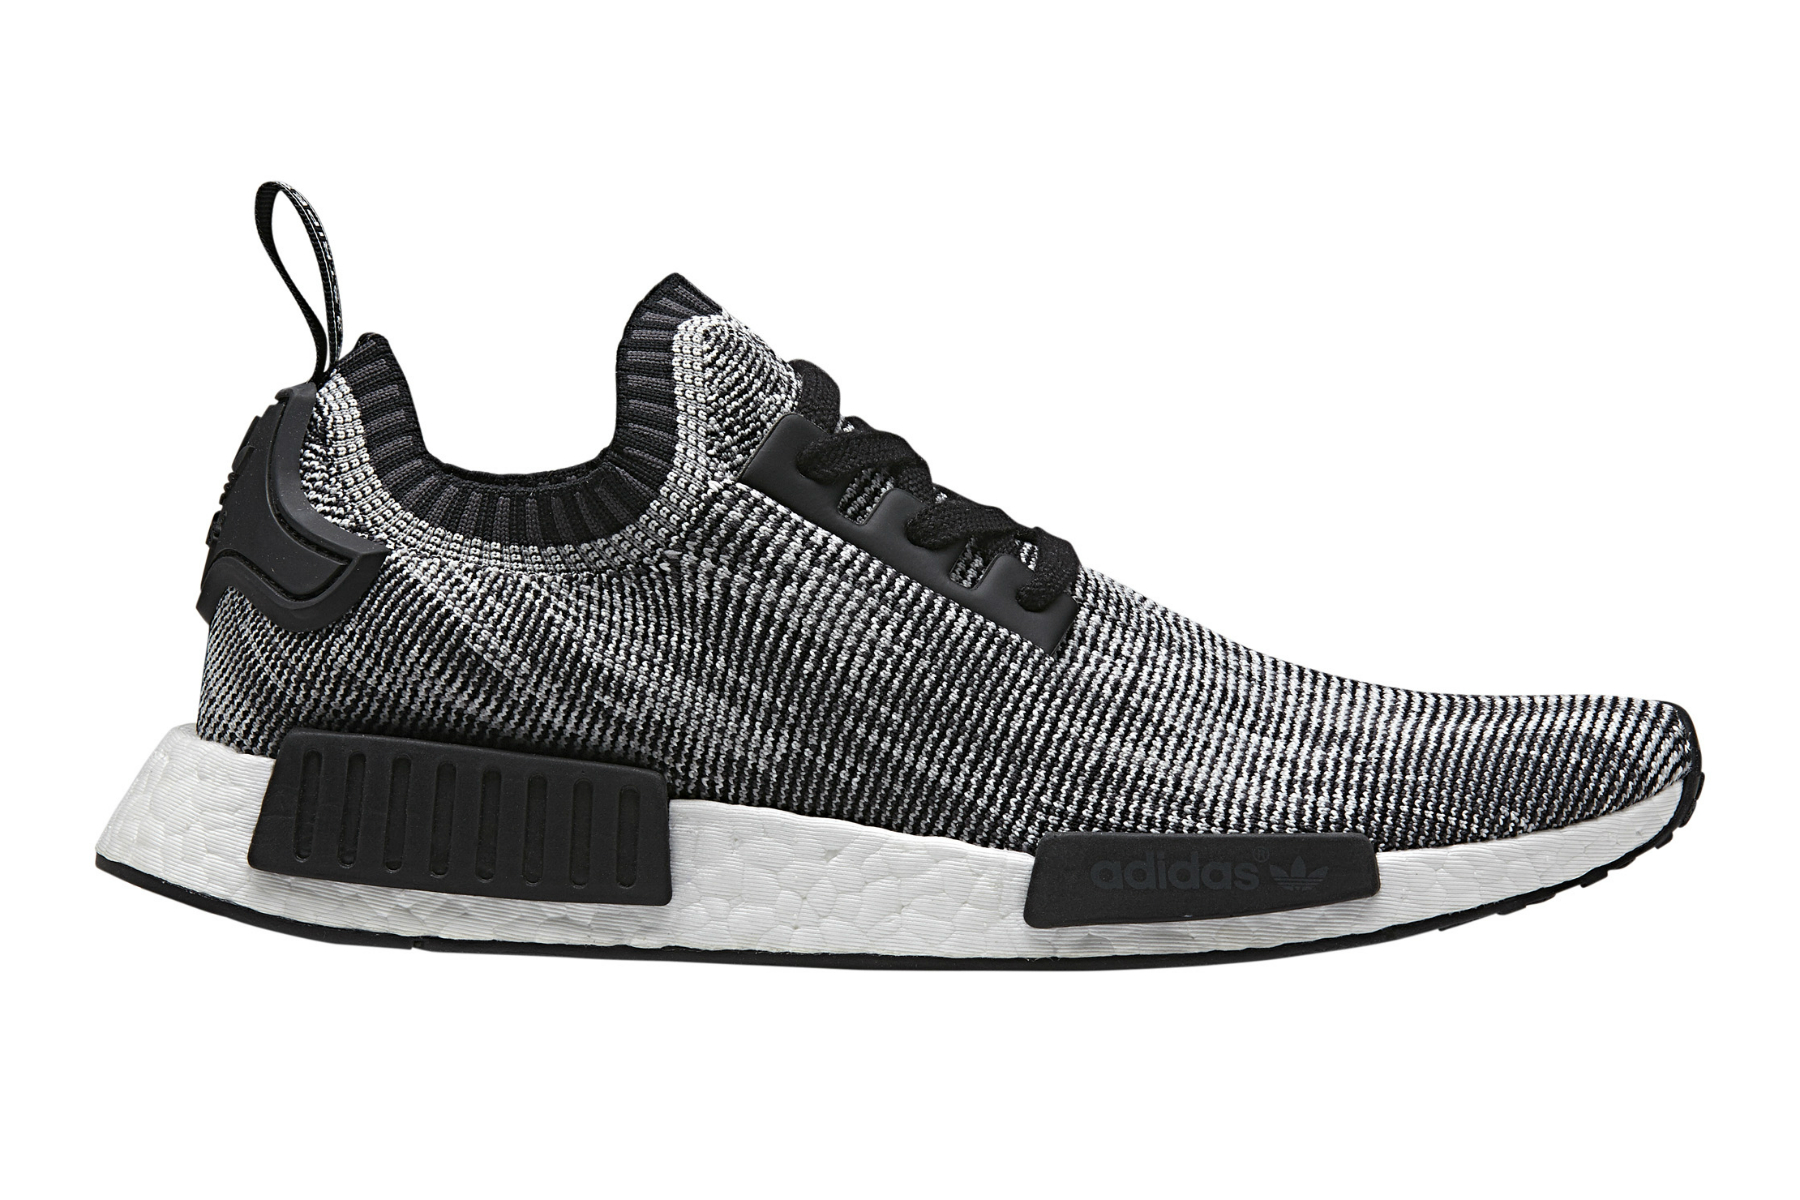 adidas nmd primeknit grey black hypebeast. Black Bedroom Furniture Sets. Home Design Ideas